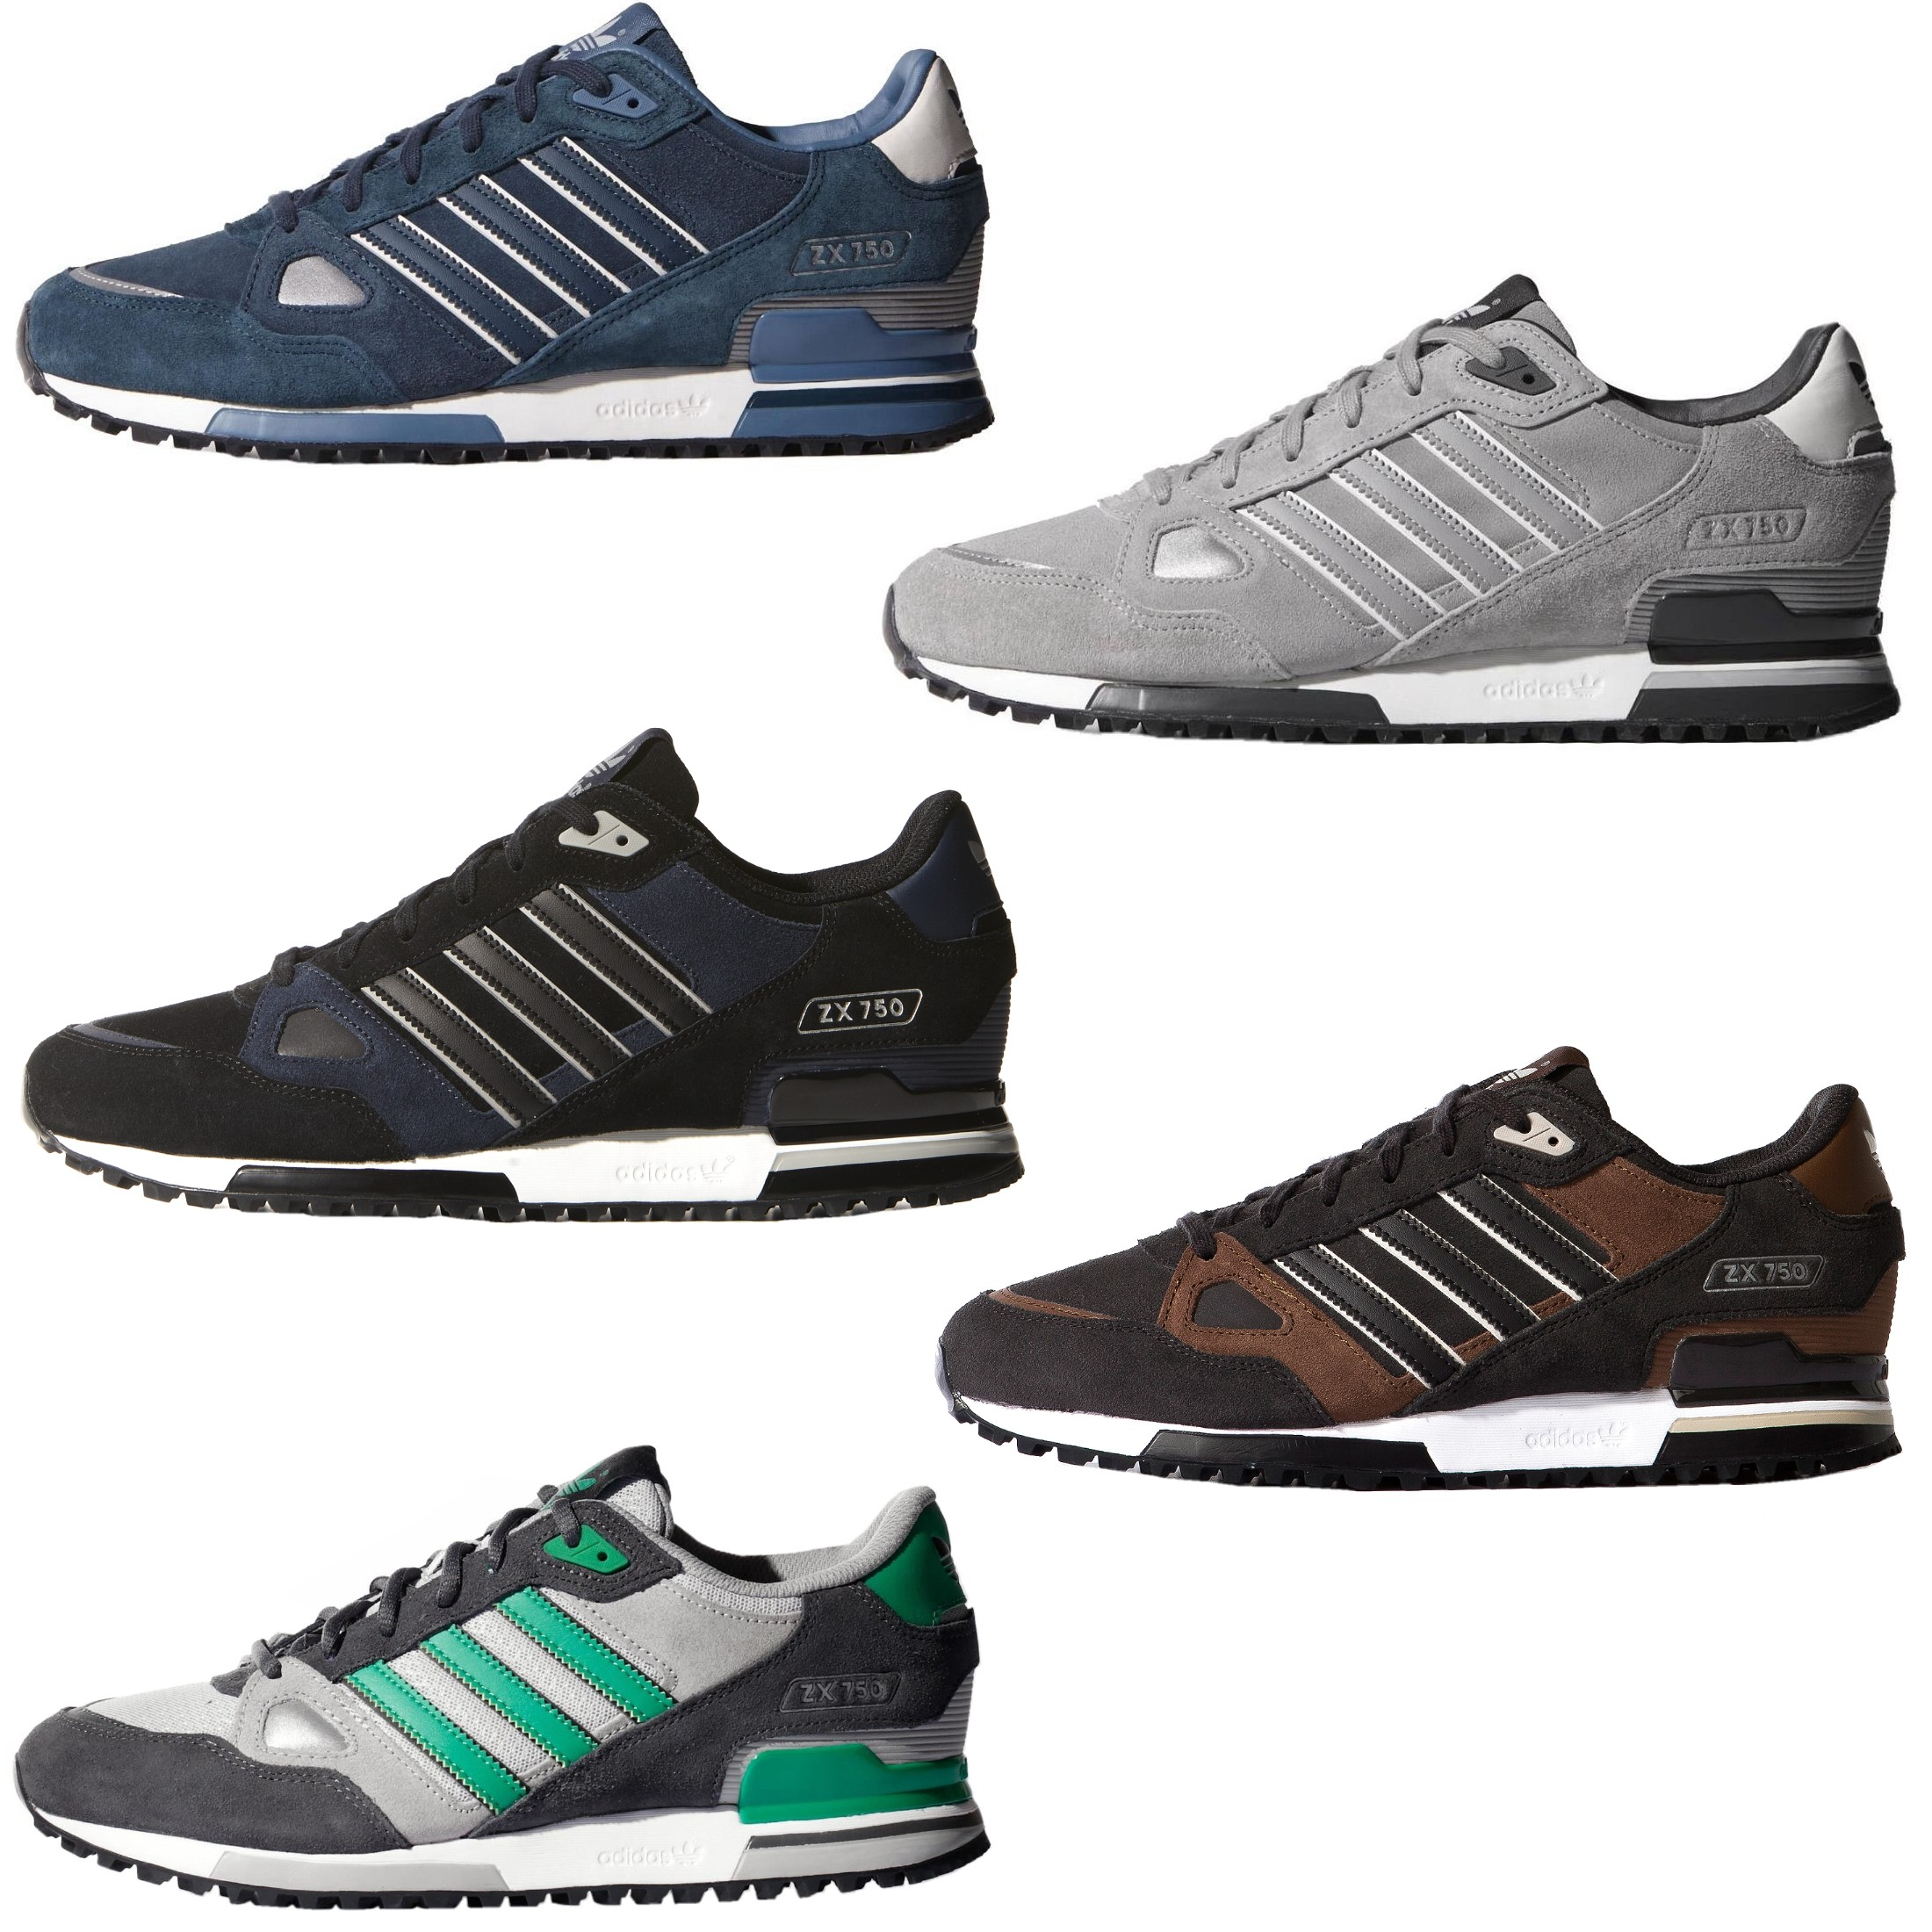 meet befad 7045f ... ireland adidas zx 750 solid grey 848c5 69d23 ...